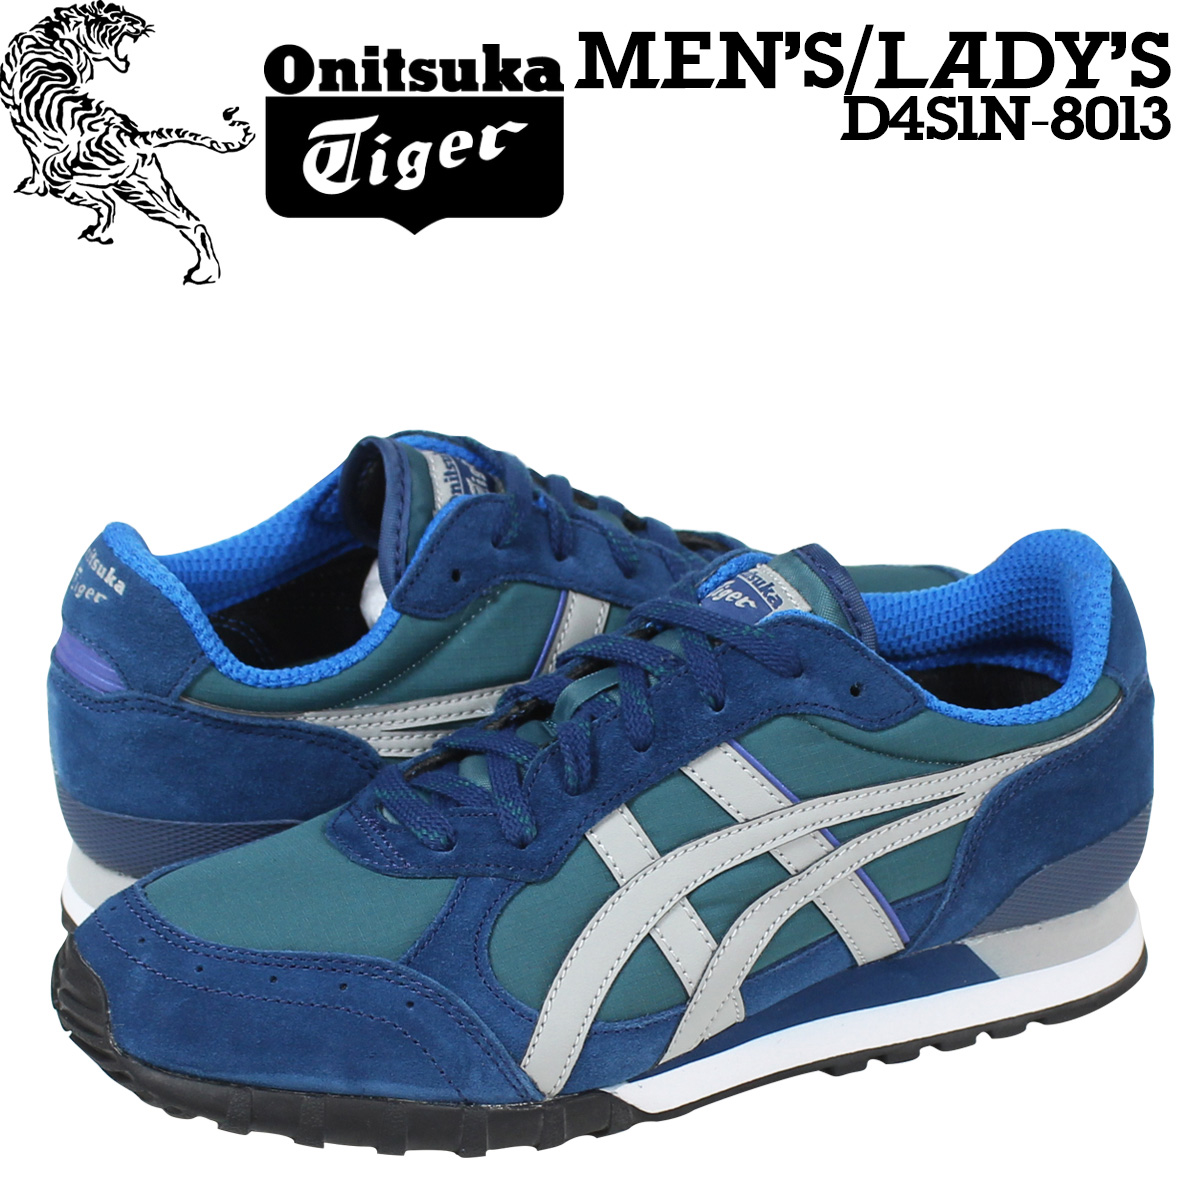 Asics Colorado sneakers to9jFNQwh